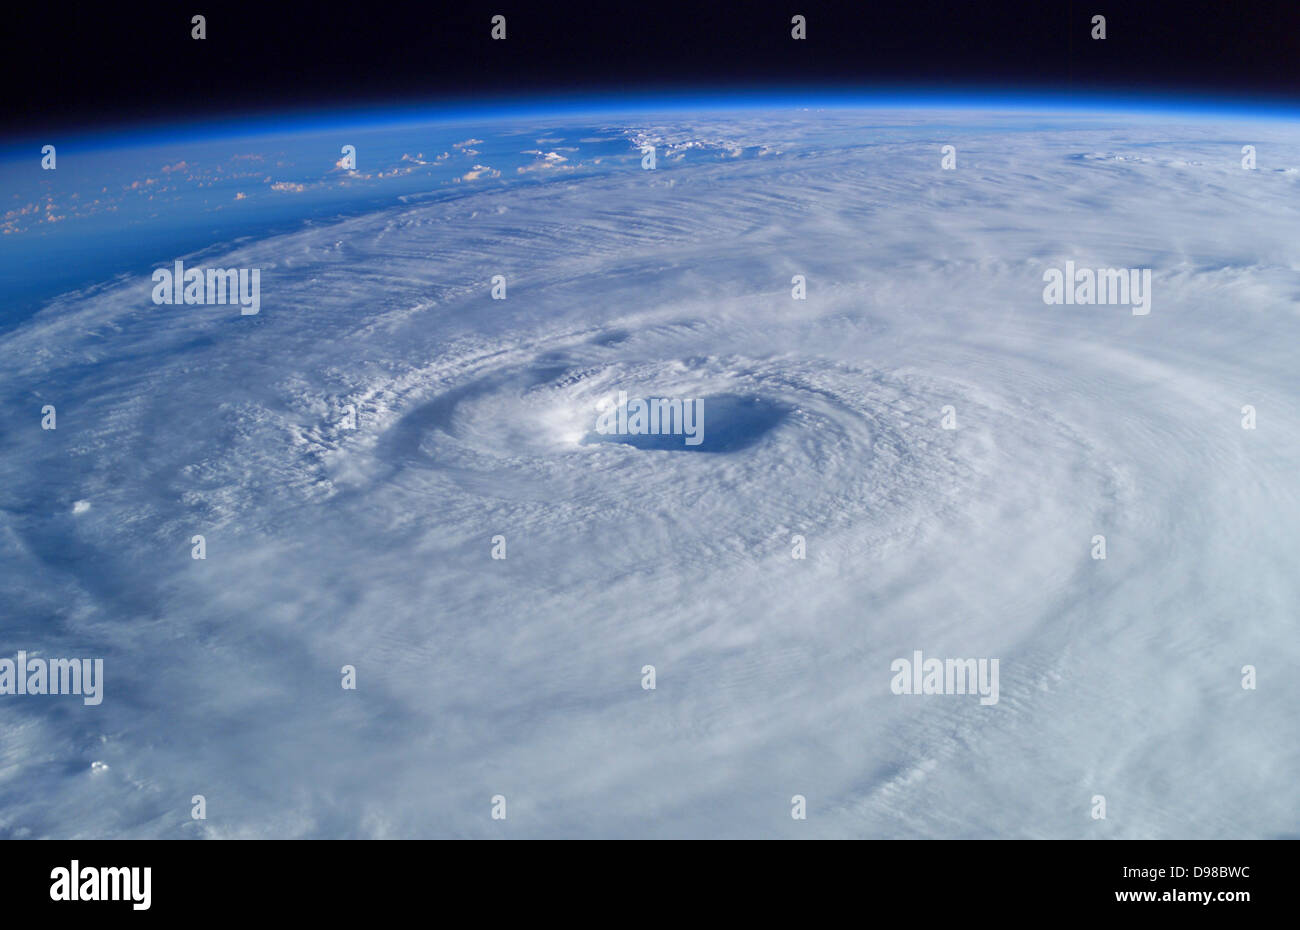 Hurricane Isabel Over the Atlantic Ocean, September 15, 2003 at 10:54:05.640 GMT.  As Seen From the International - Stock Image